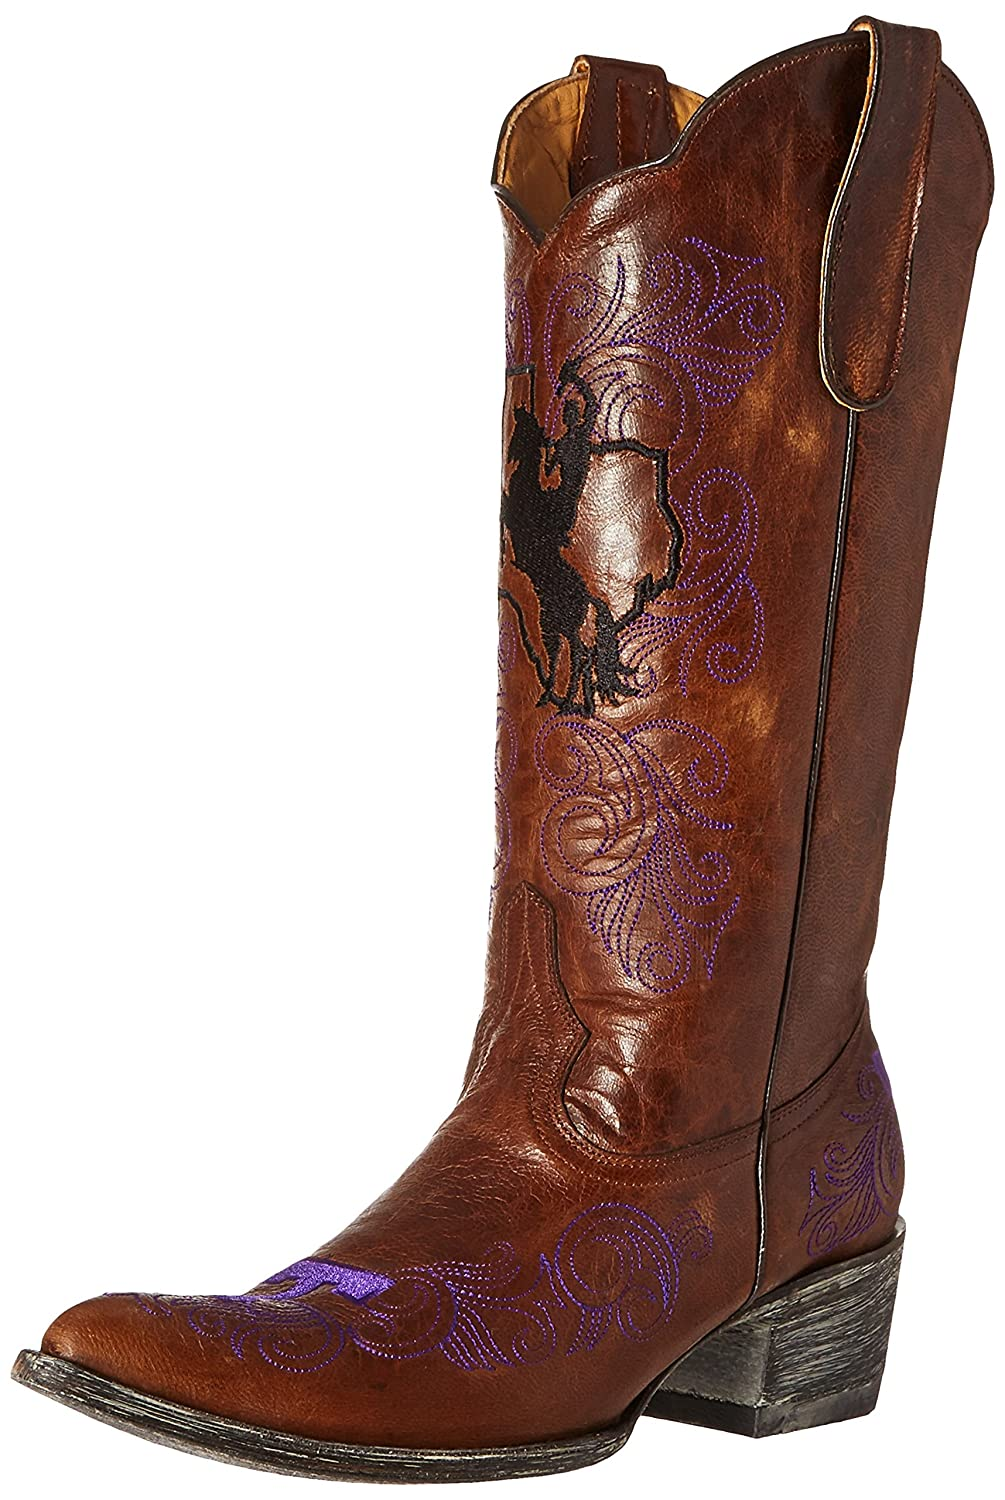 Gameday Boots NCAA Tarleton State Texans Women's 13-Inch B00A8O7KPG 11 B (M) US|Brass